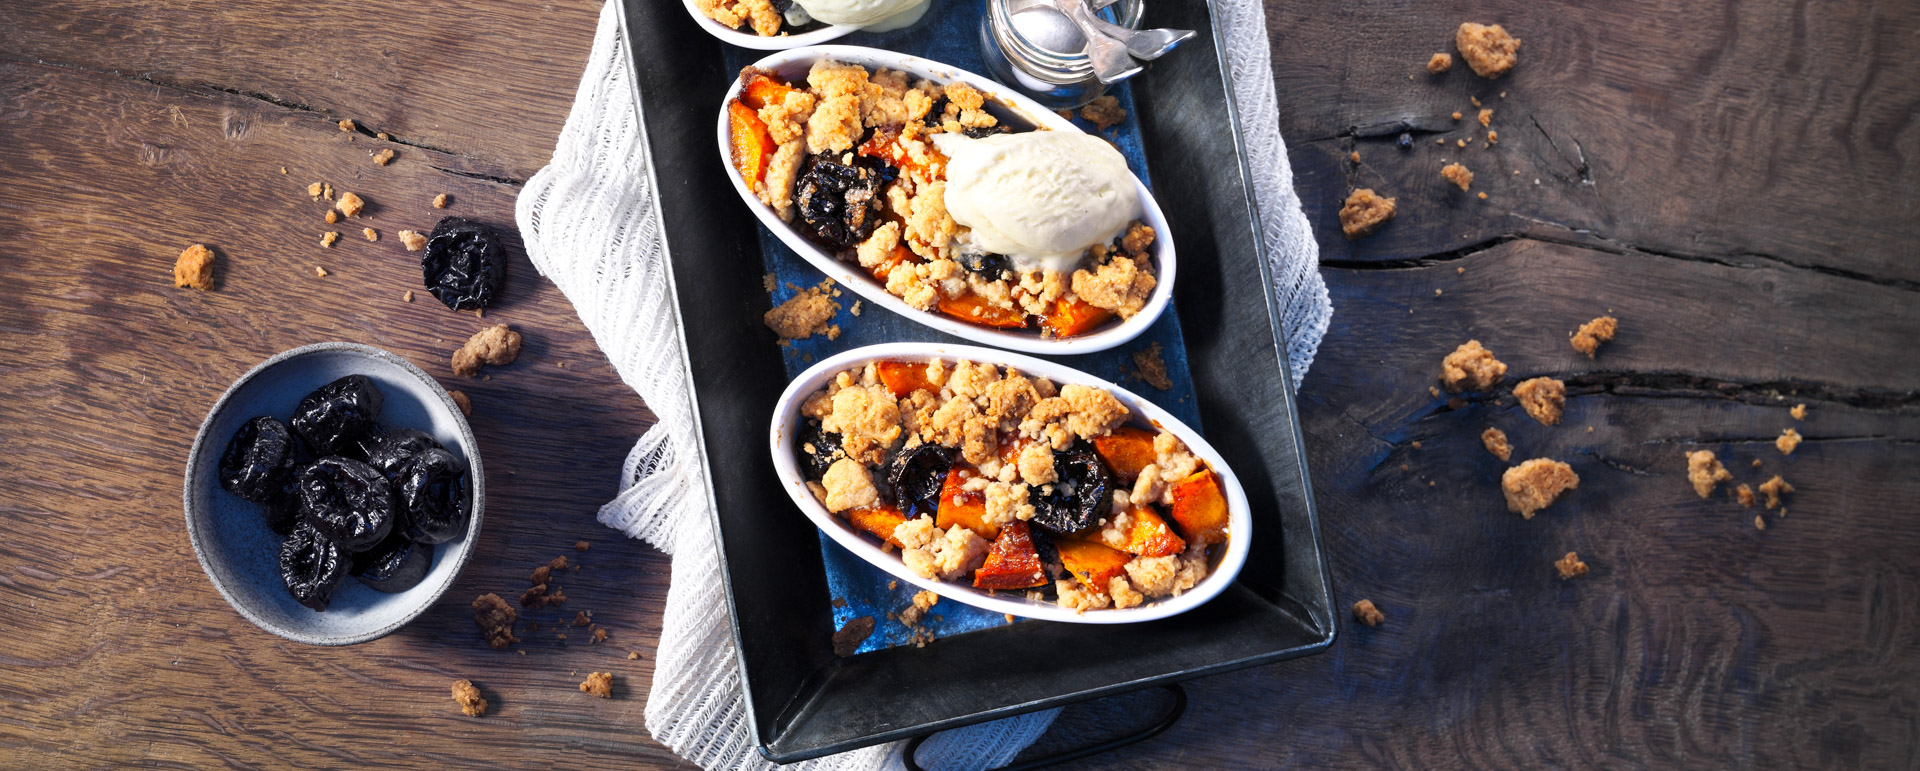 <p>This dish is full of warm spiced flavor with an addictive crumbly topping. It's classic fall comfort food and perfect to served warm with ice cream</p>